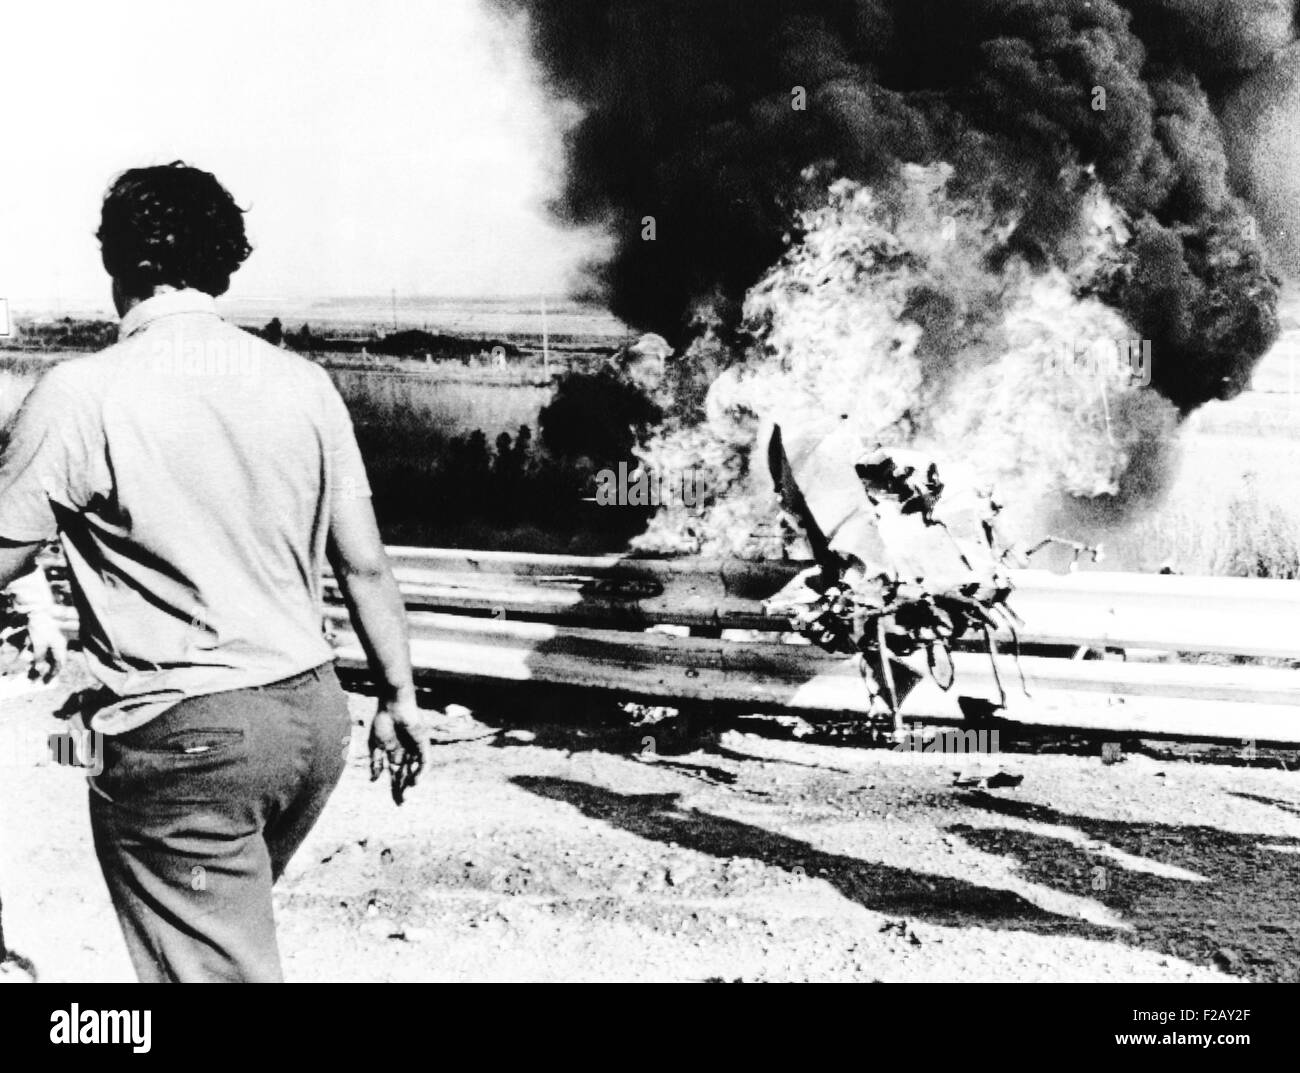 Burning wreckage of Peter Revson's race car jammed against the race track guard rail. The fatal crash occurred - Stock Image